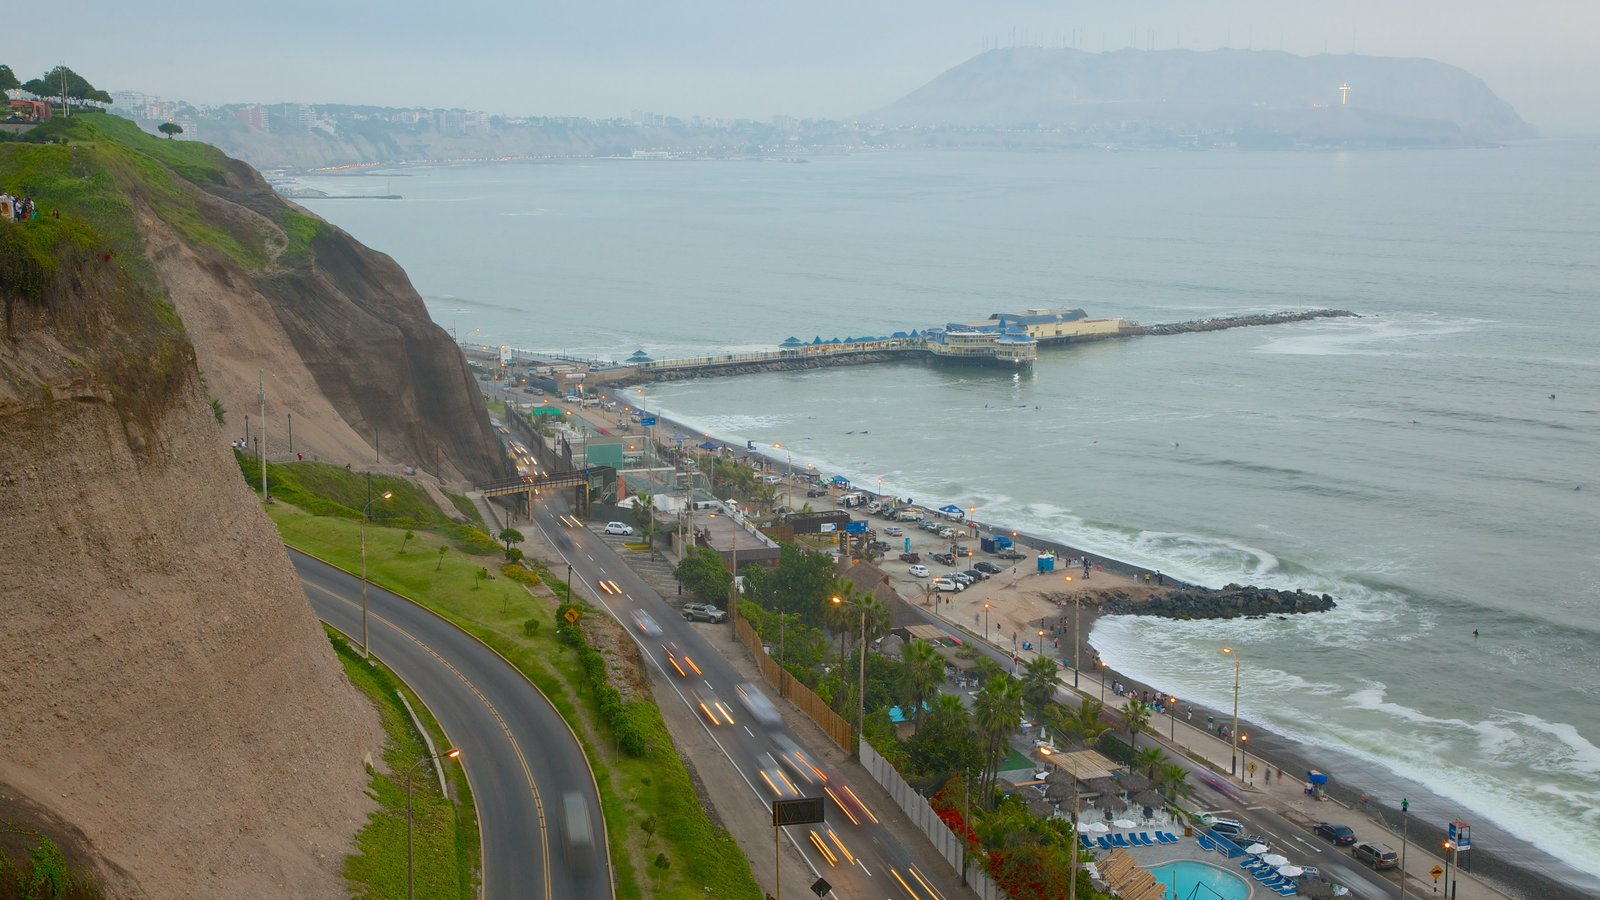 Miraflores featuring general coastal views